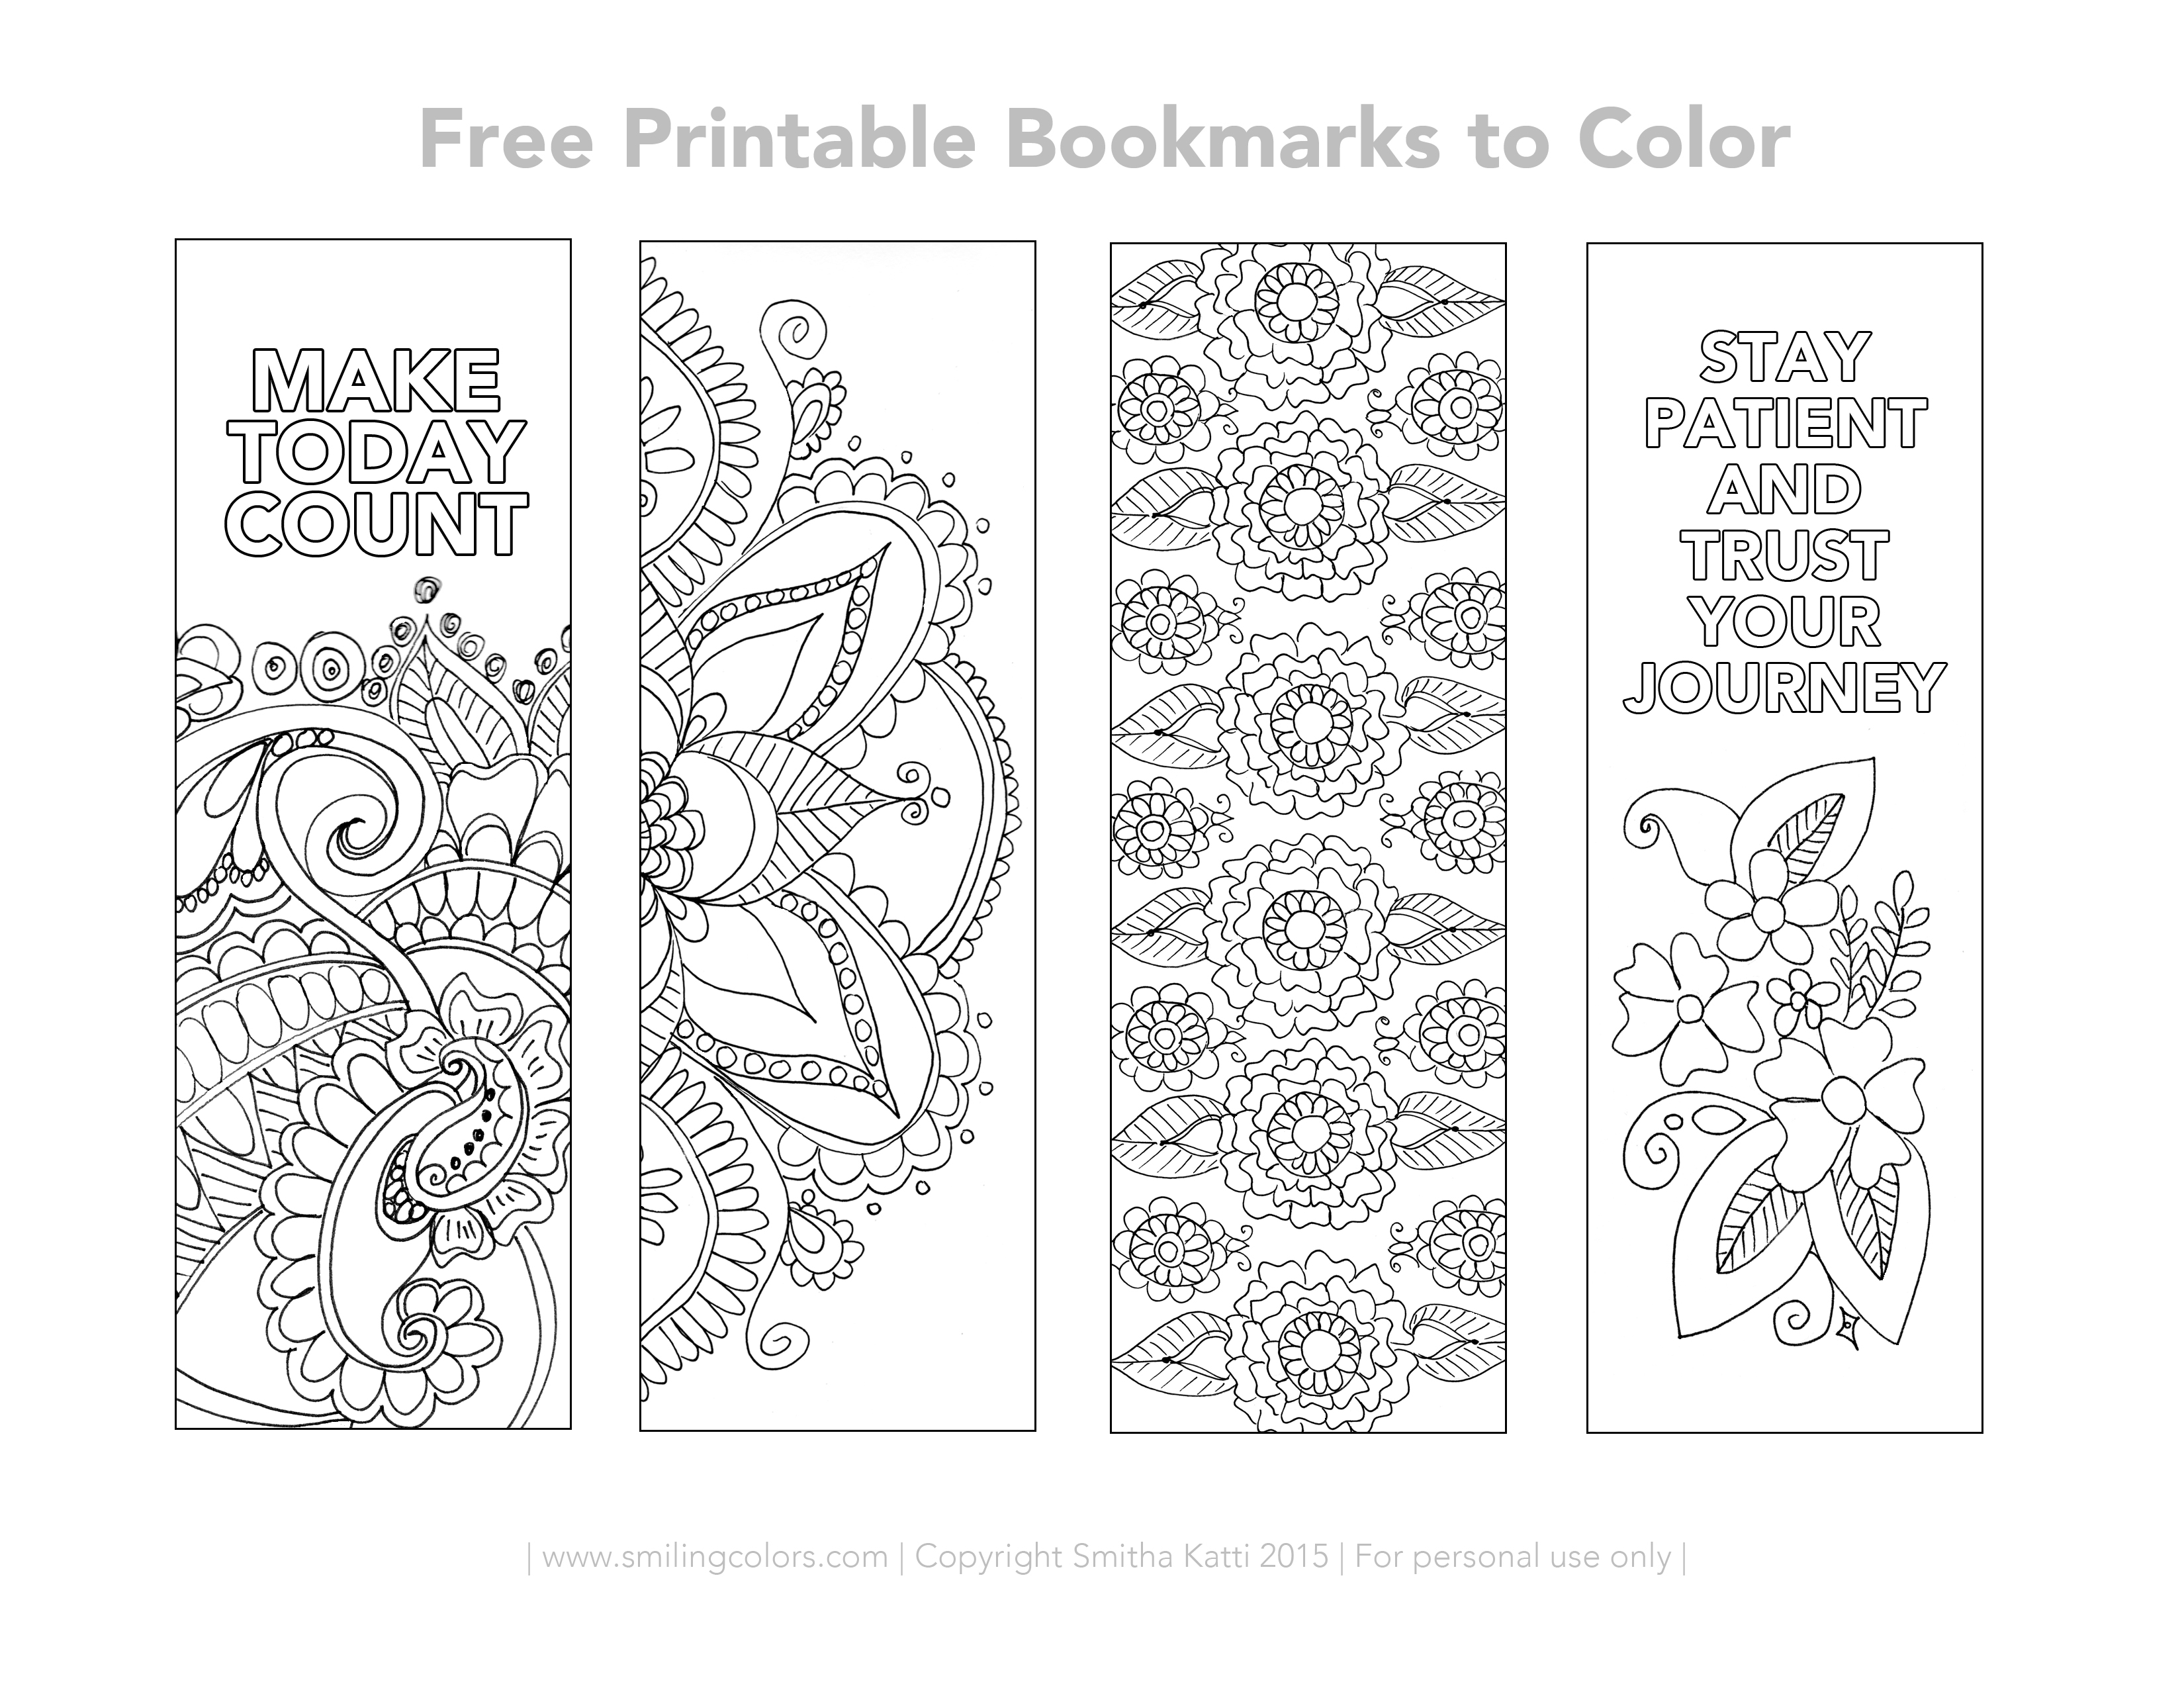 image relating to Printable Bookmarks called No cost Printable Bookmarks in direction of coloration - Smitha Katti